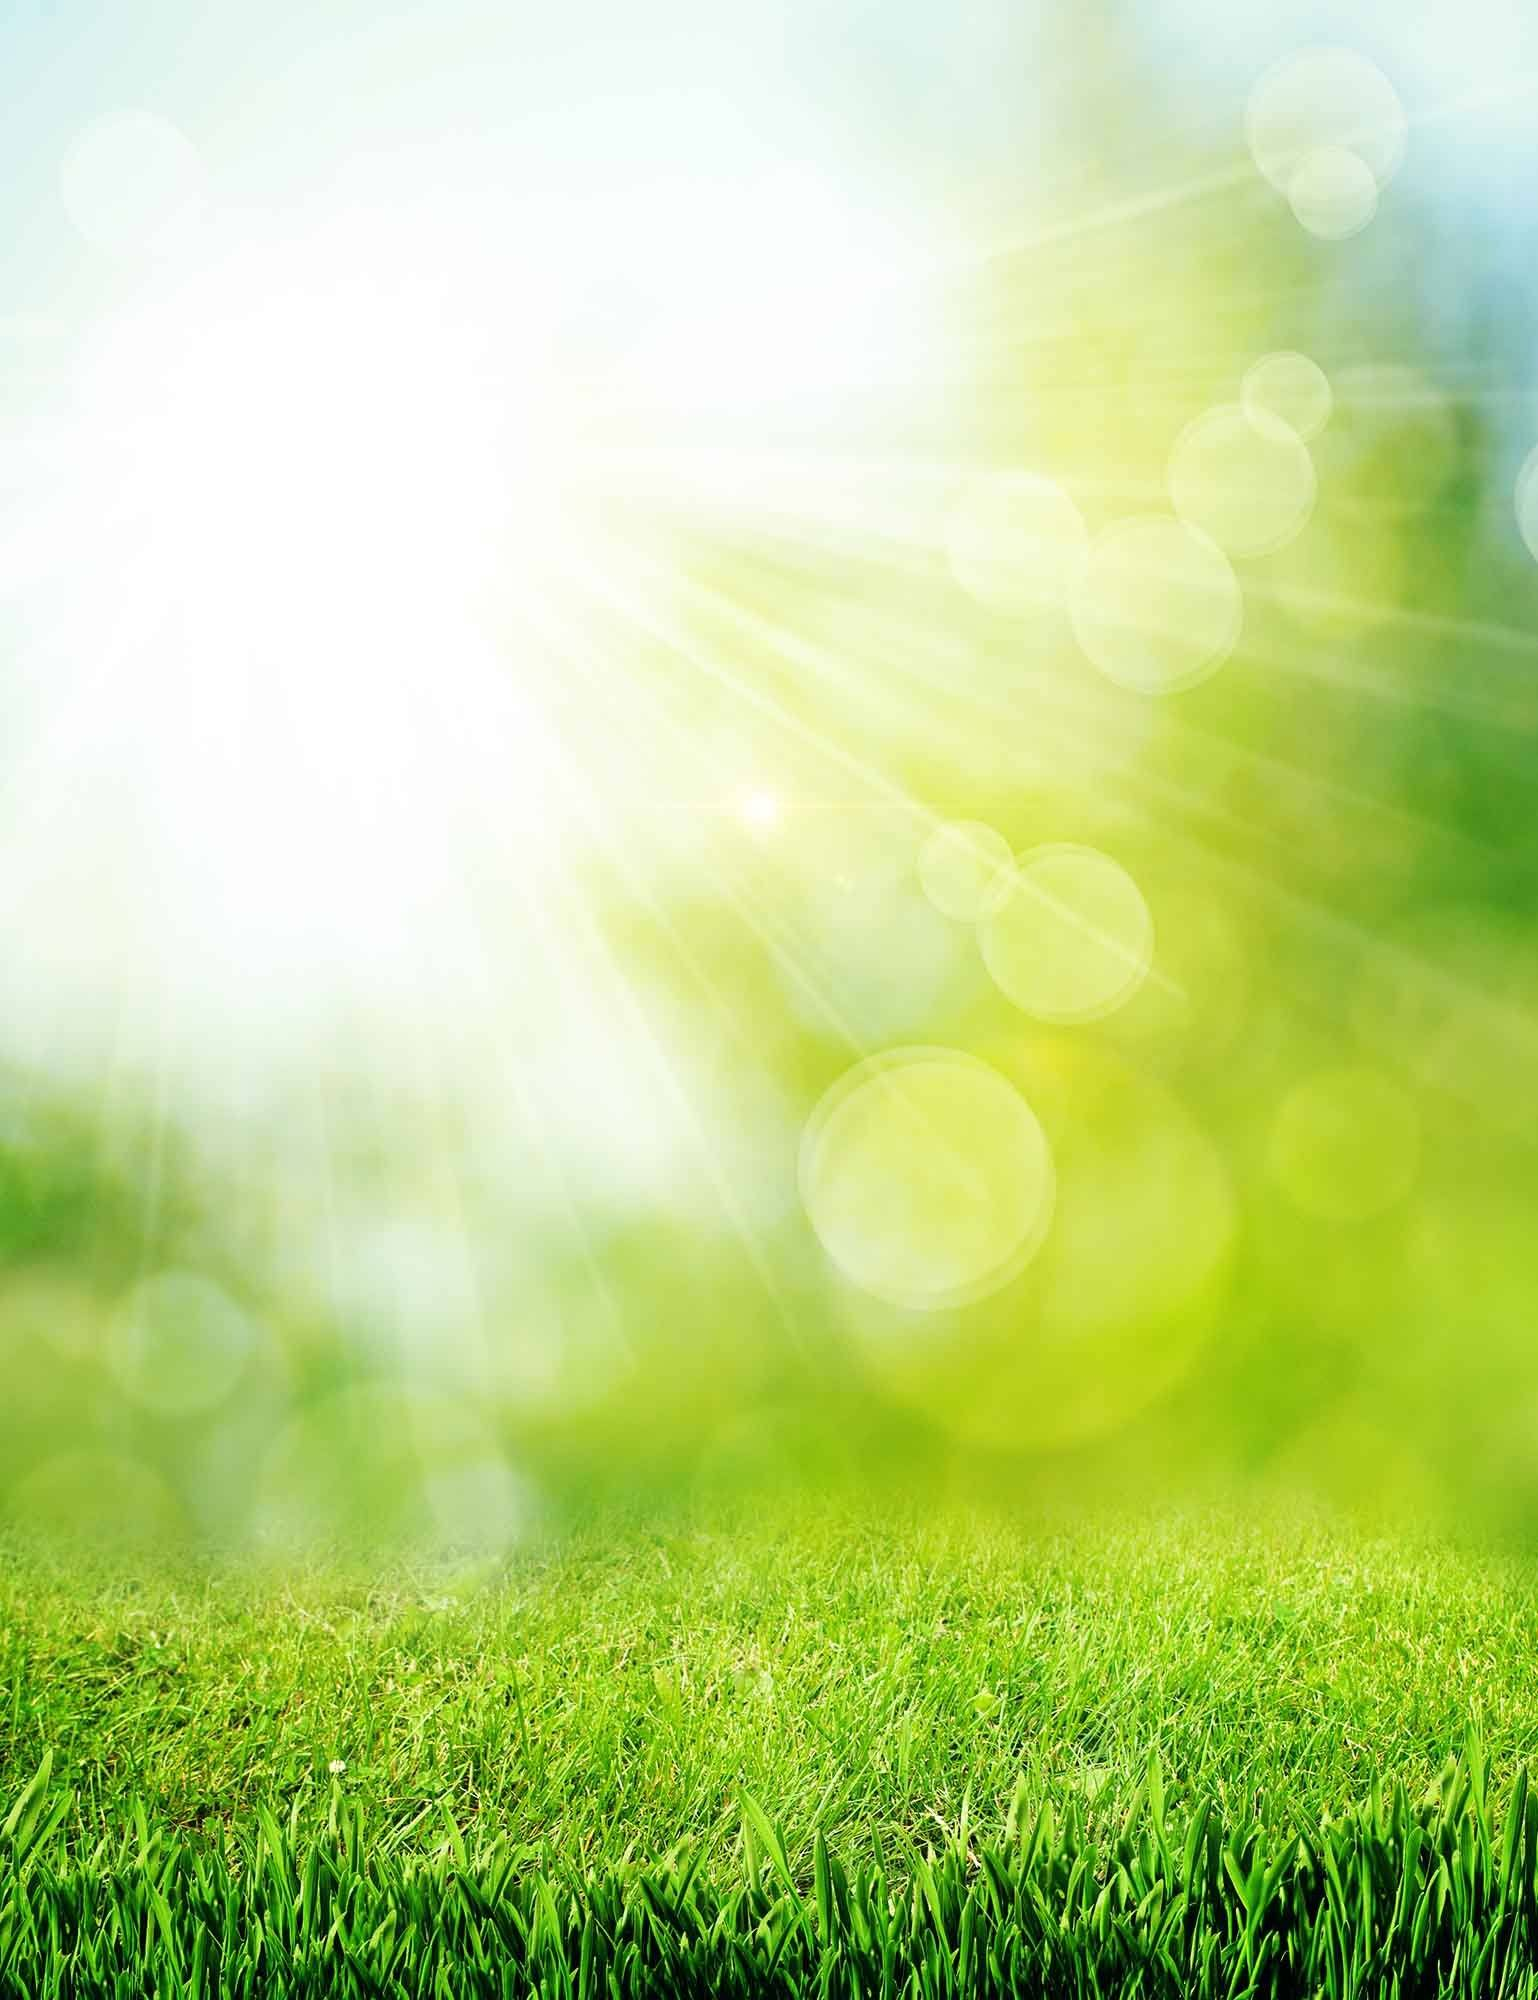 Green Grass In Bokeh Sunshine For Baby Photography